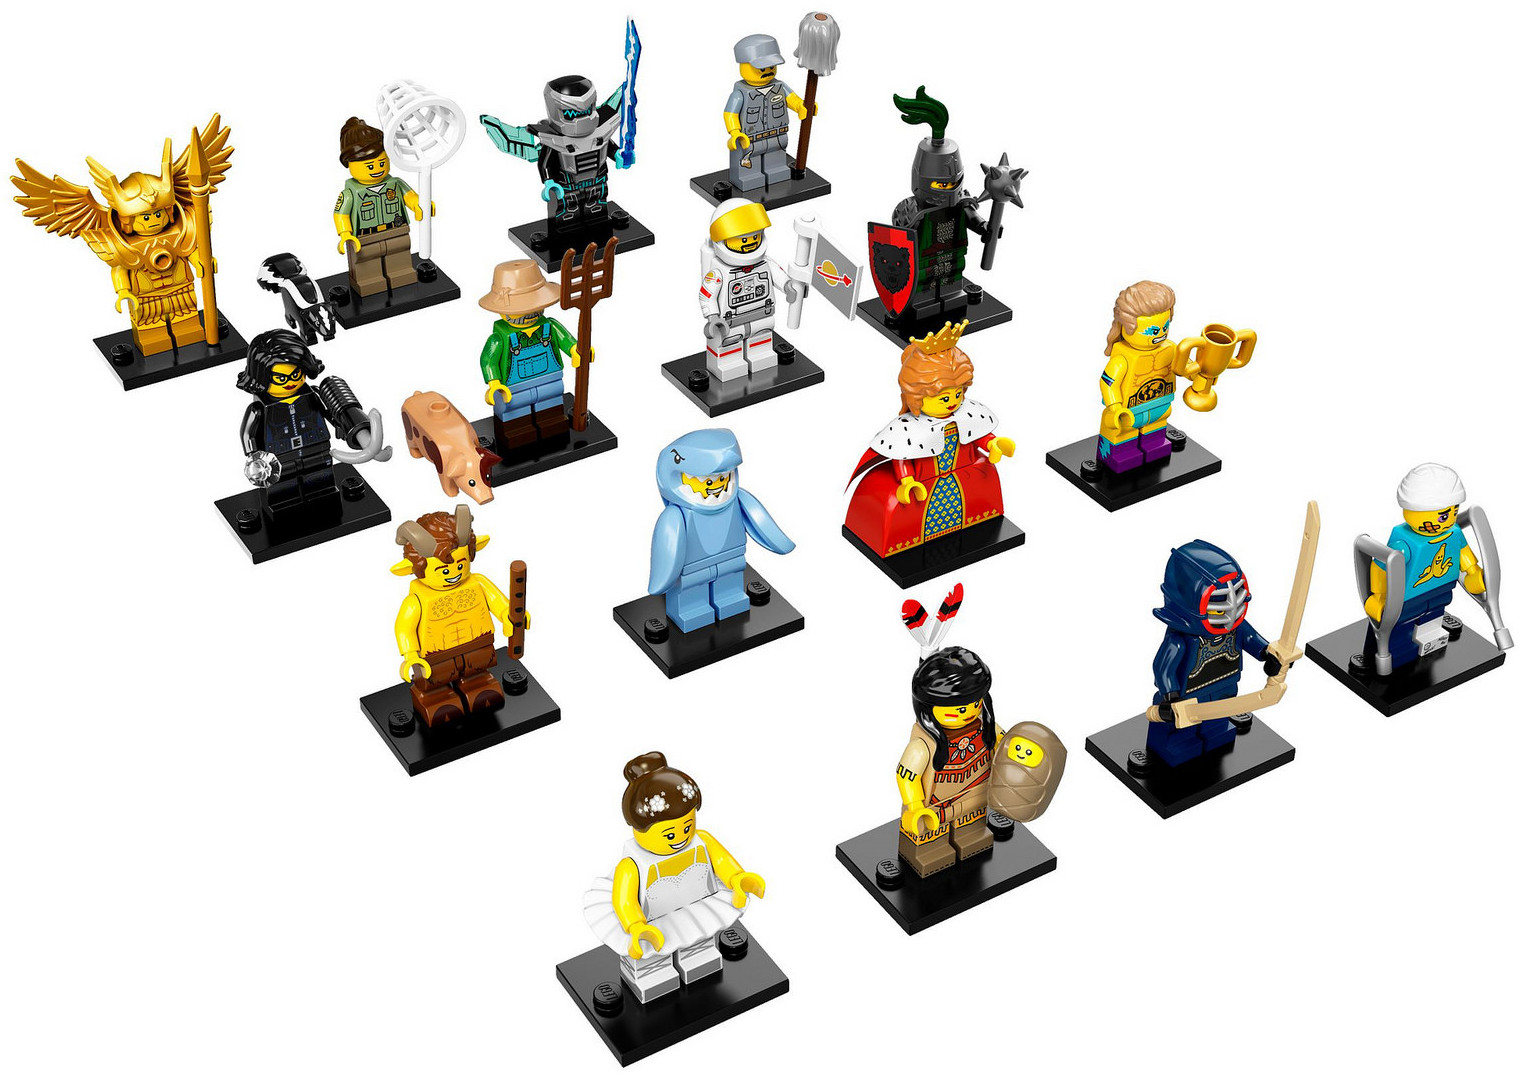 LEGO 71011 - LEGO Minifigures Series 15 Complete Full Set (16pcs) MISP